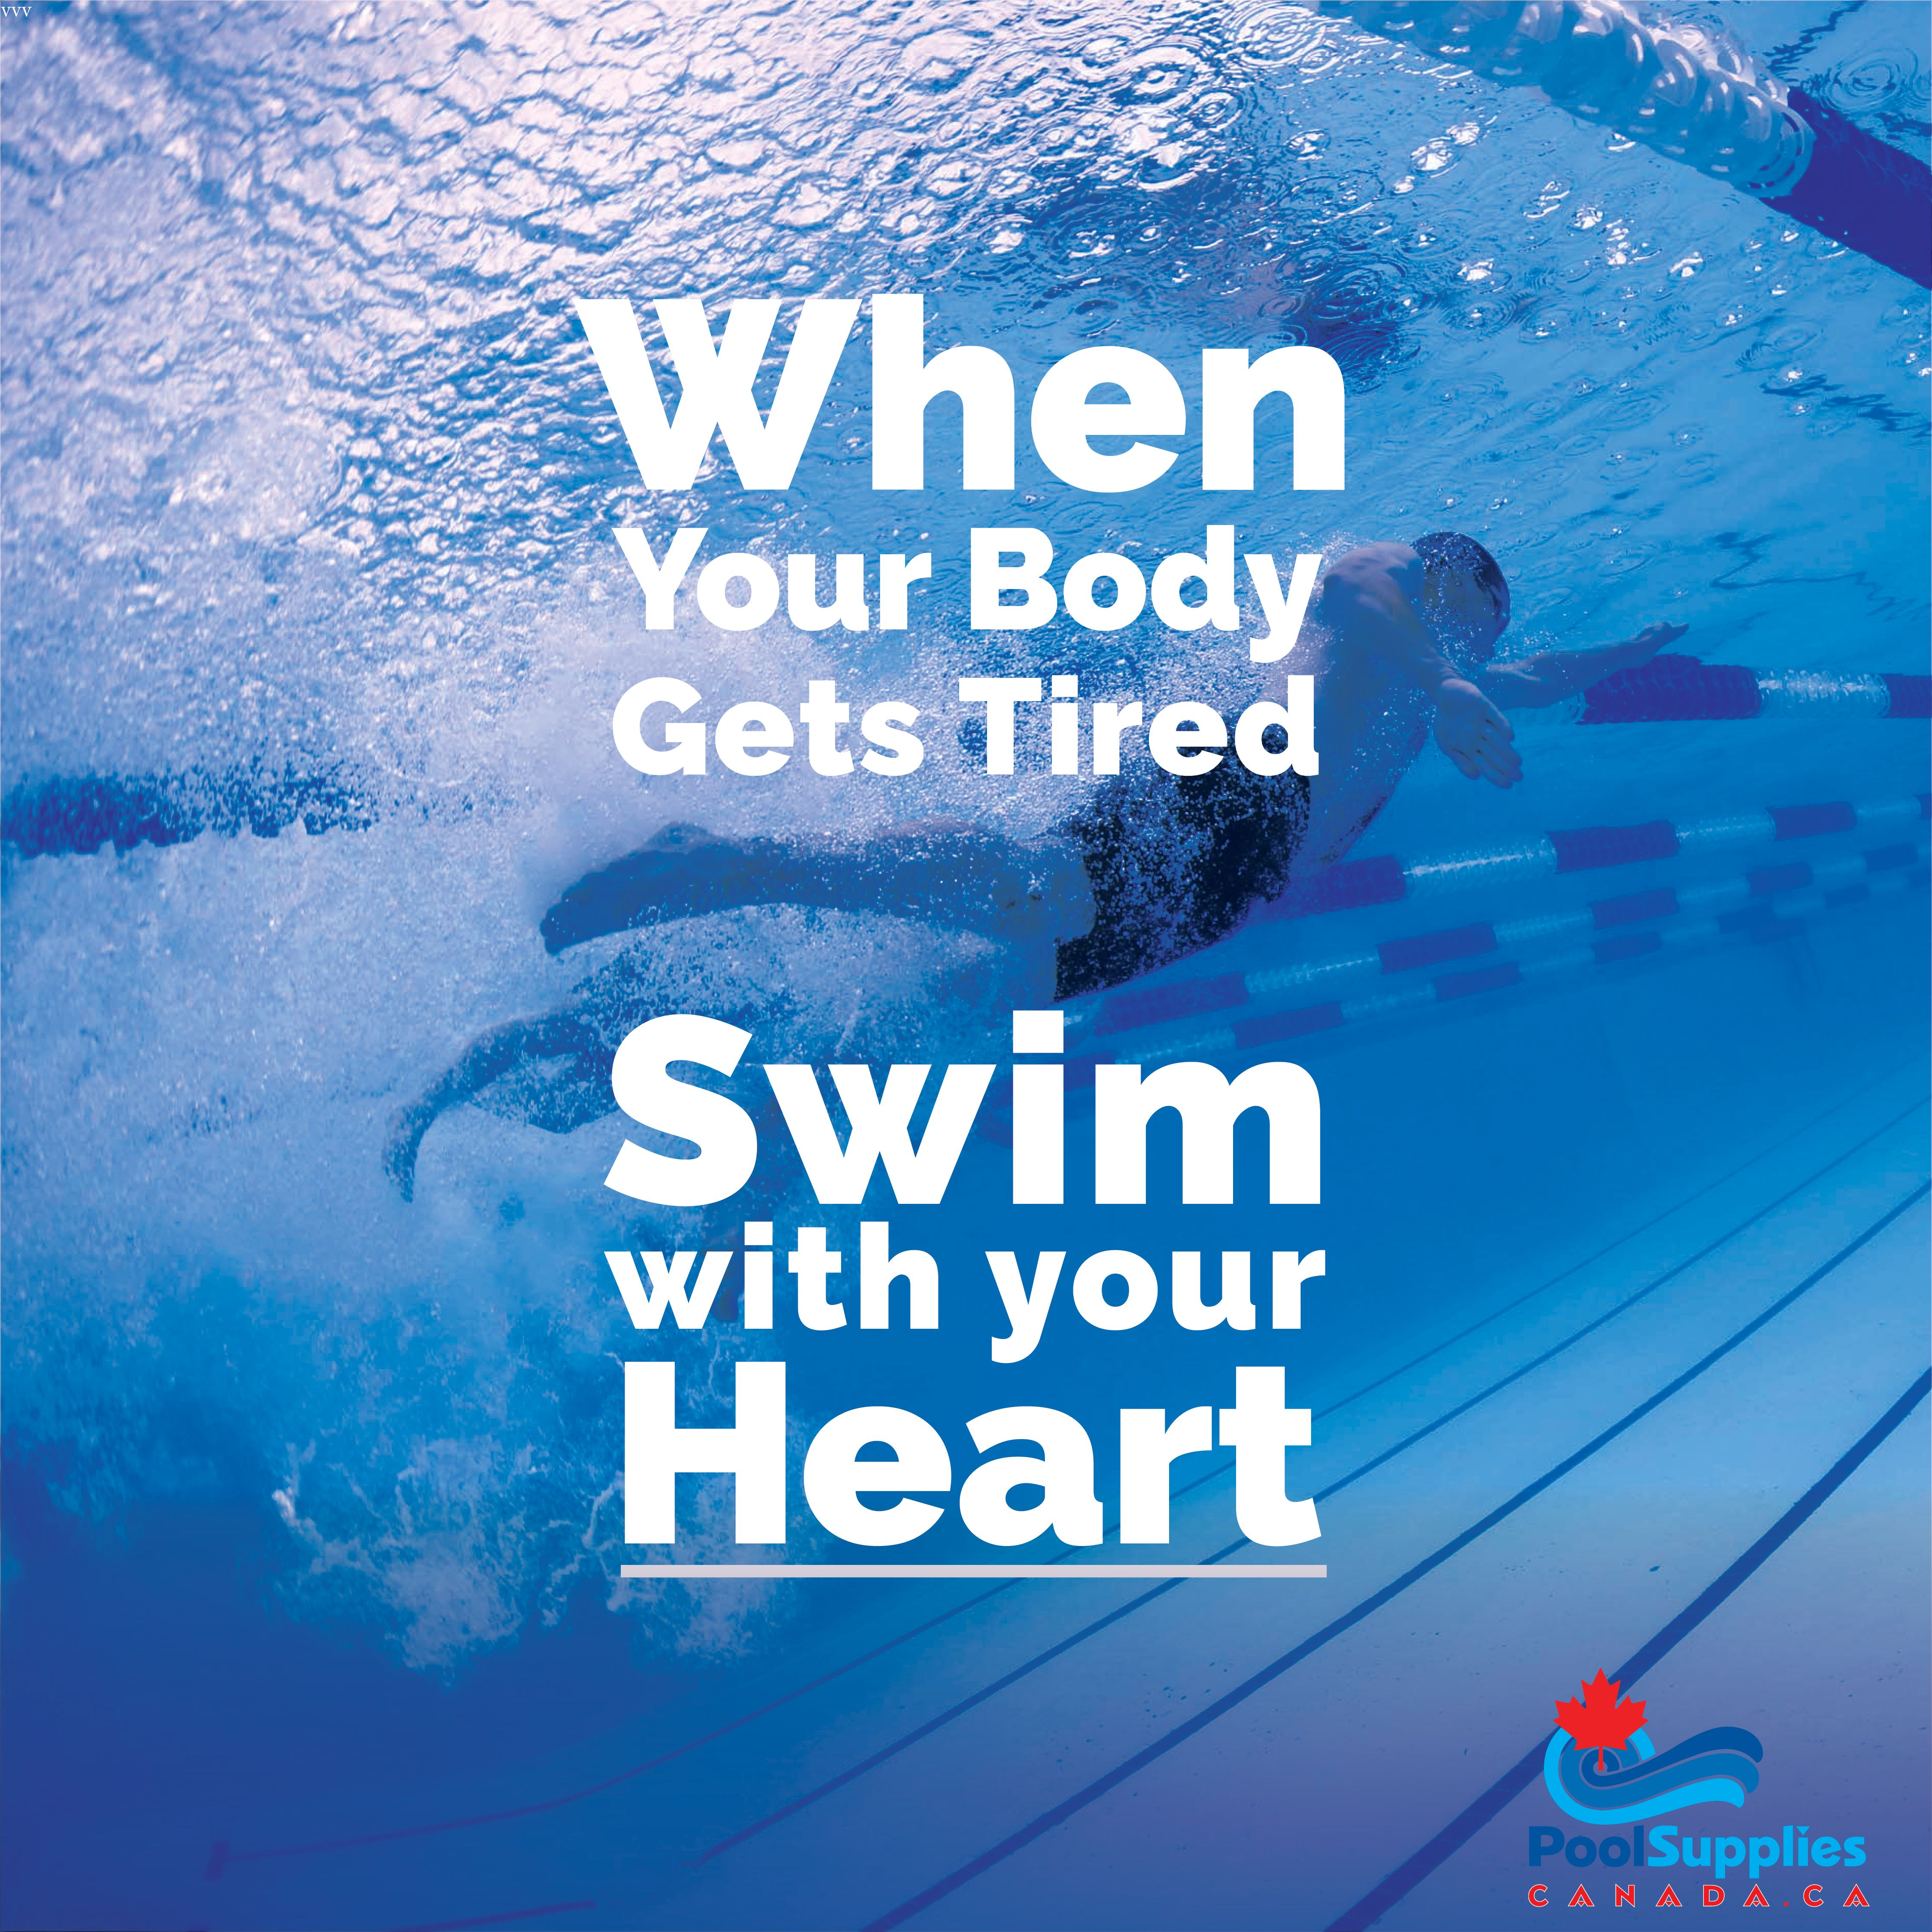 Swimming Quotes Best Swim Your Heart Out #swim #pool #swimming #quotes #motivation Www